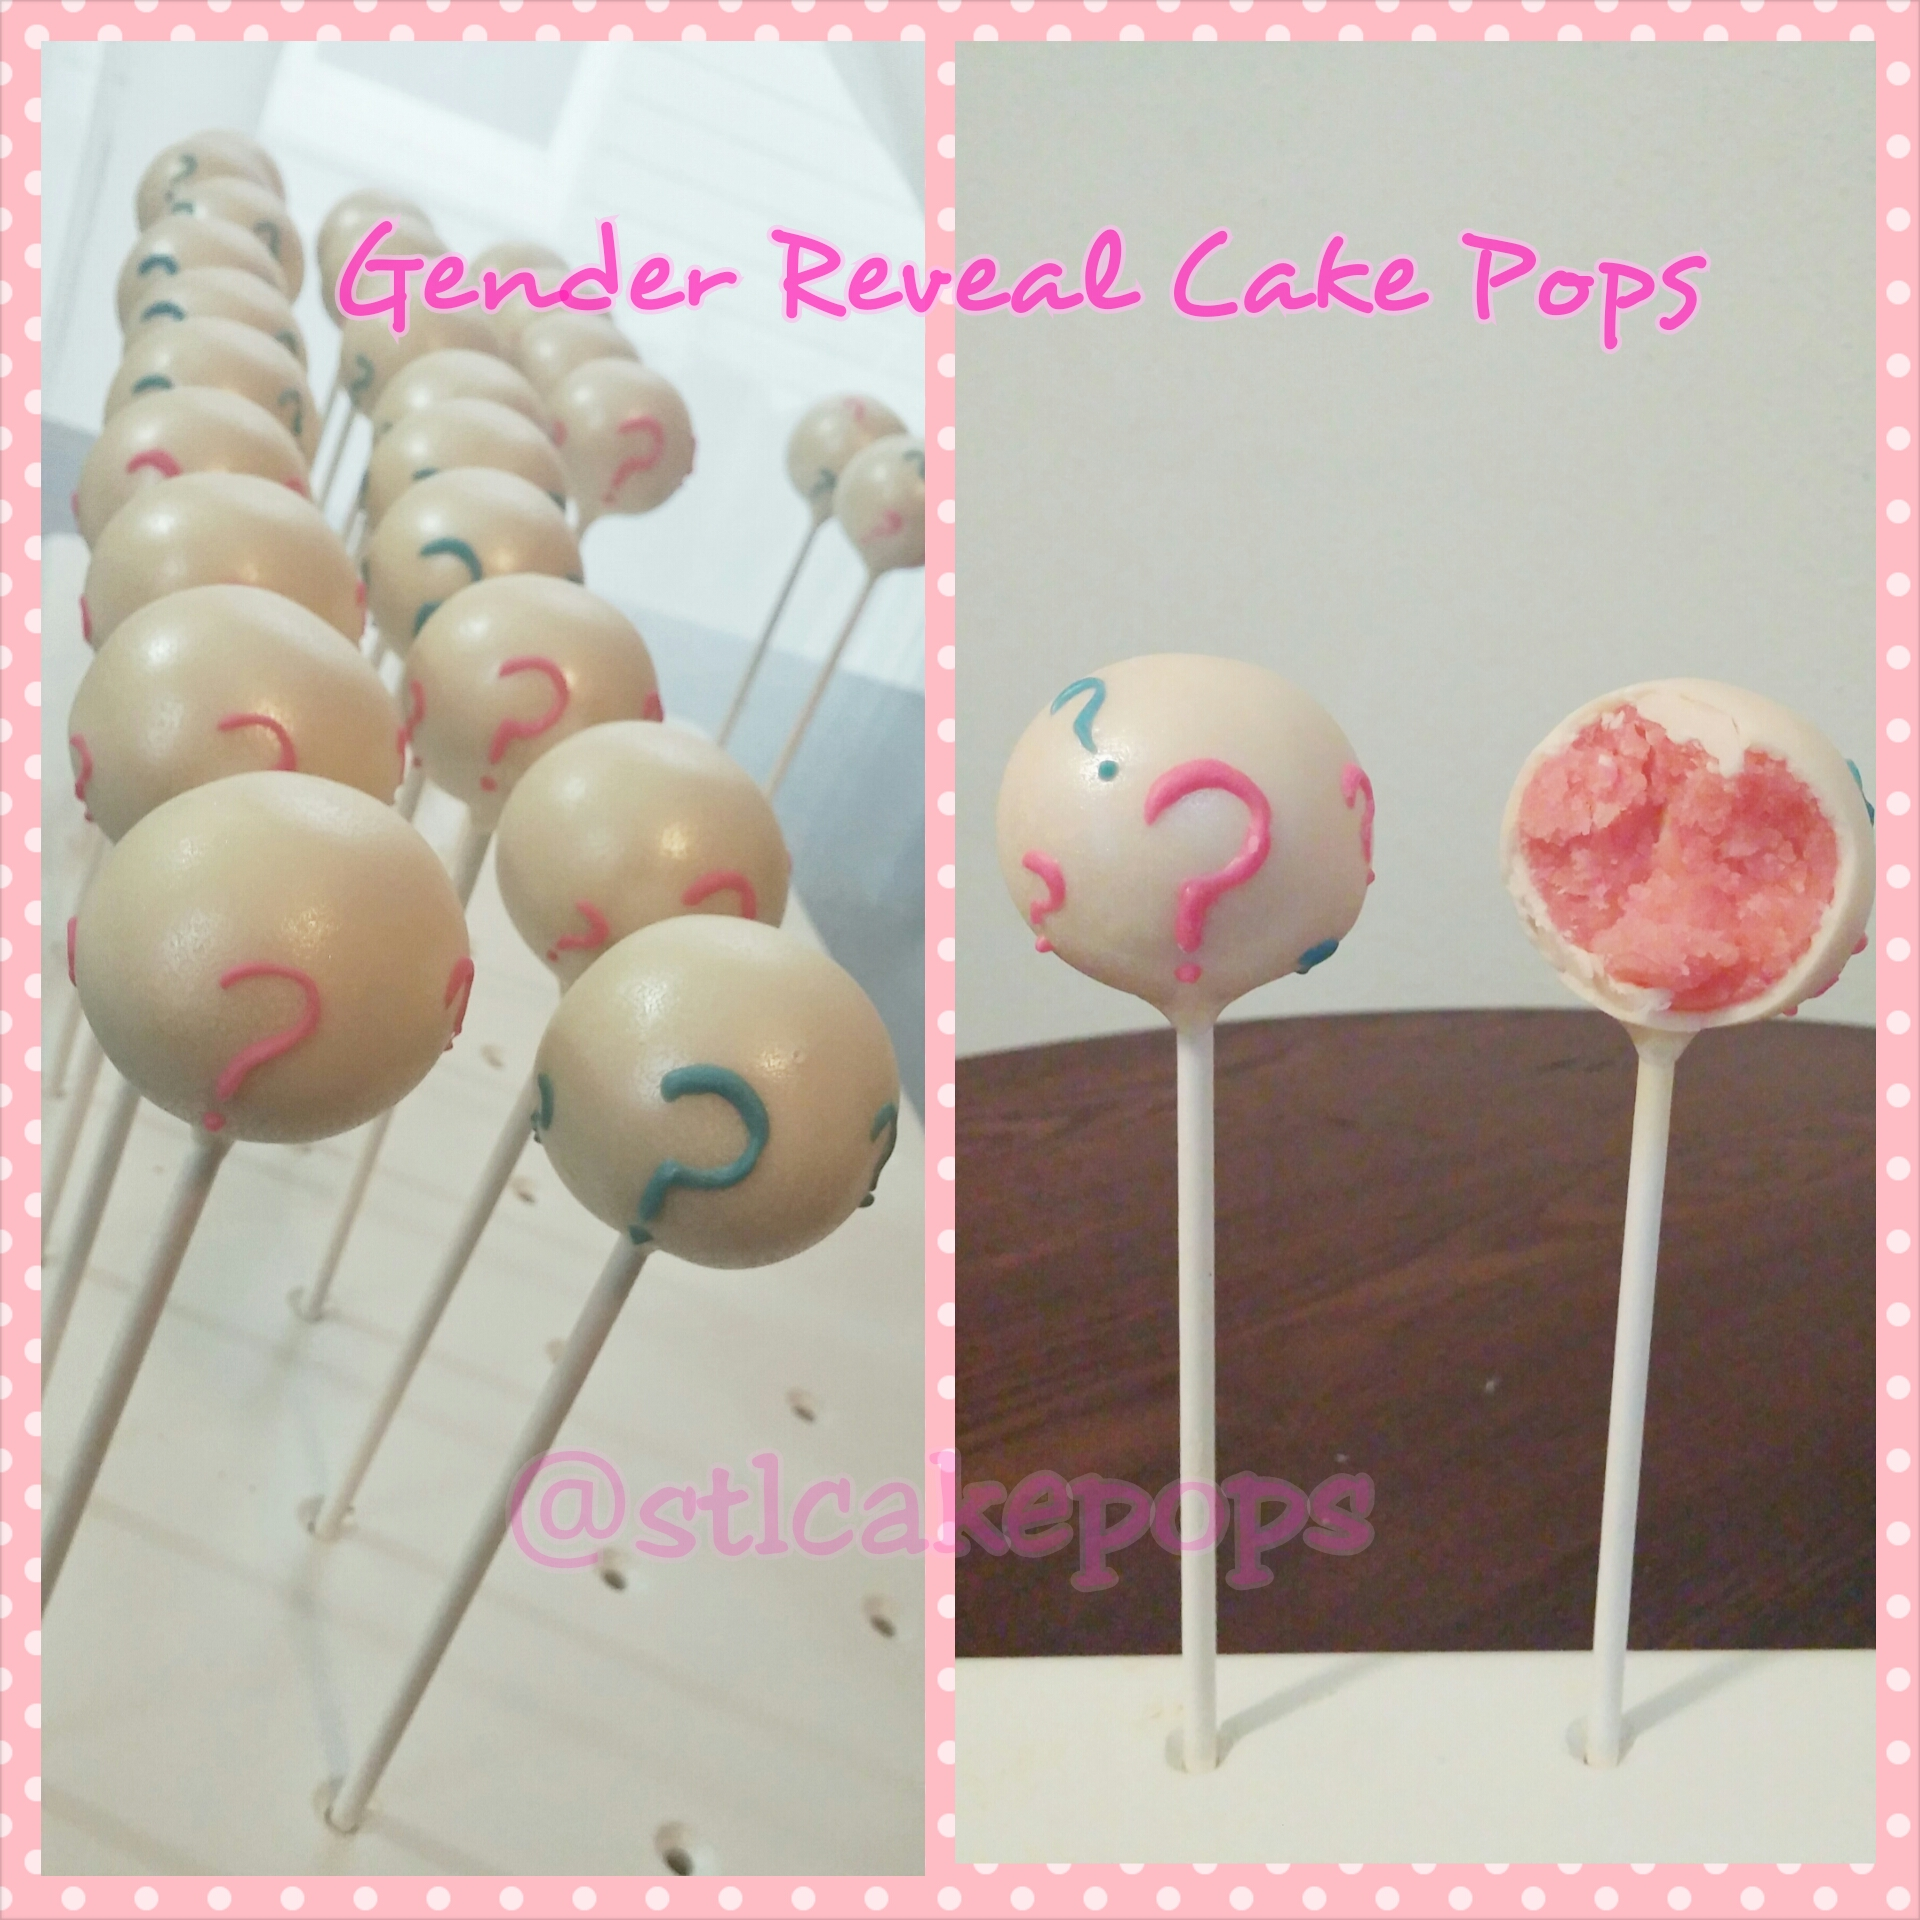 White cake pop with blue and pink question marks.